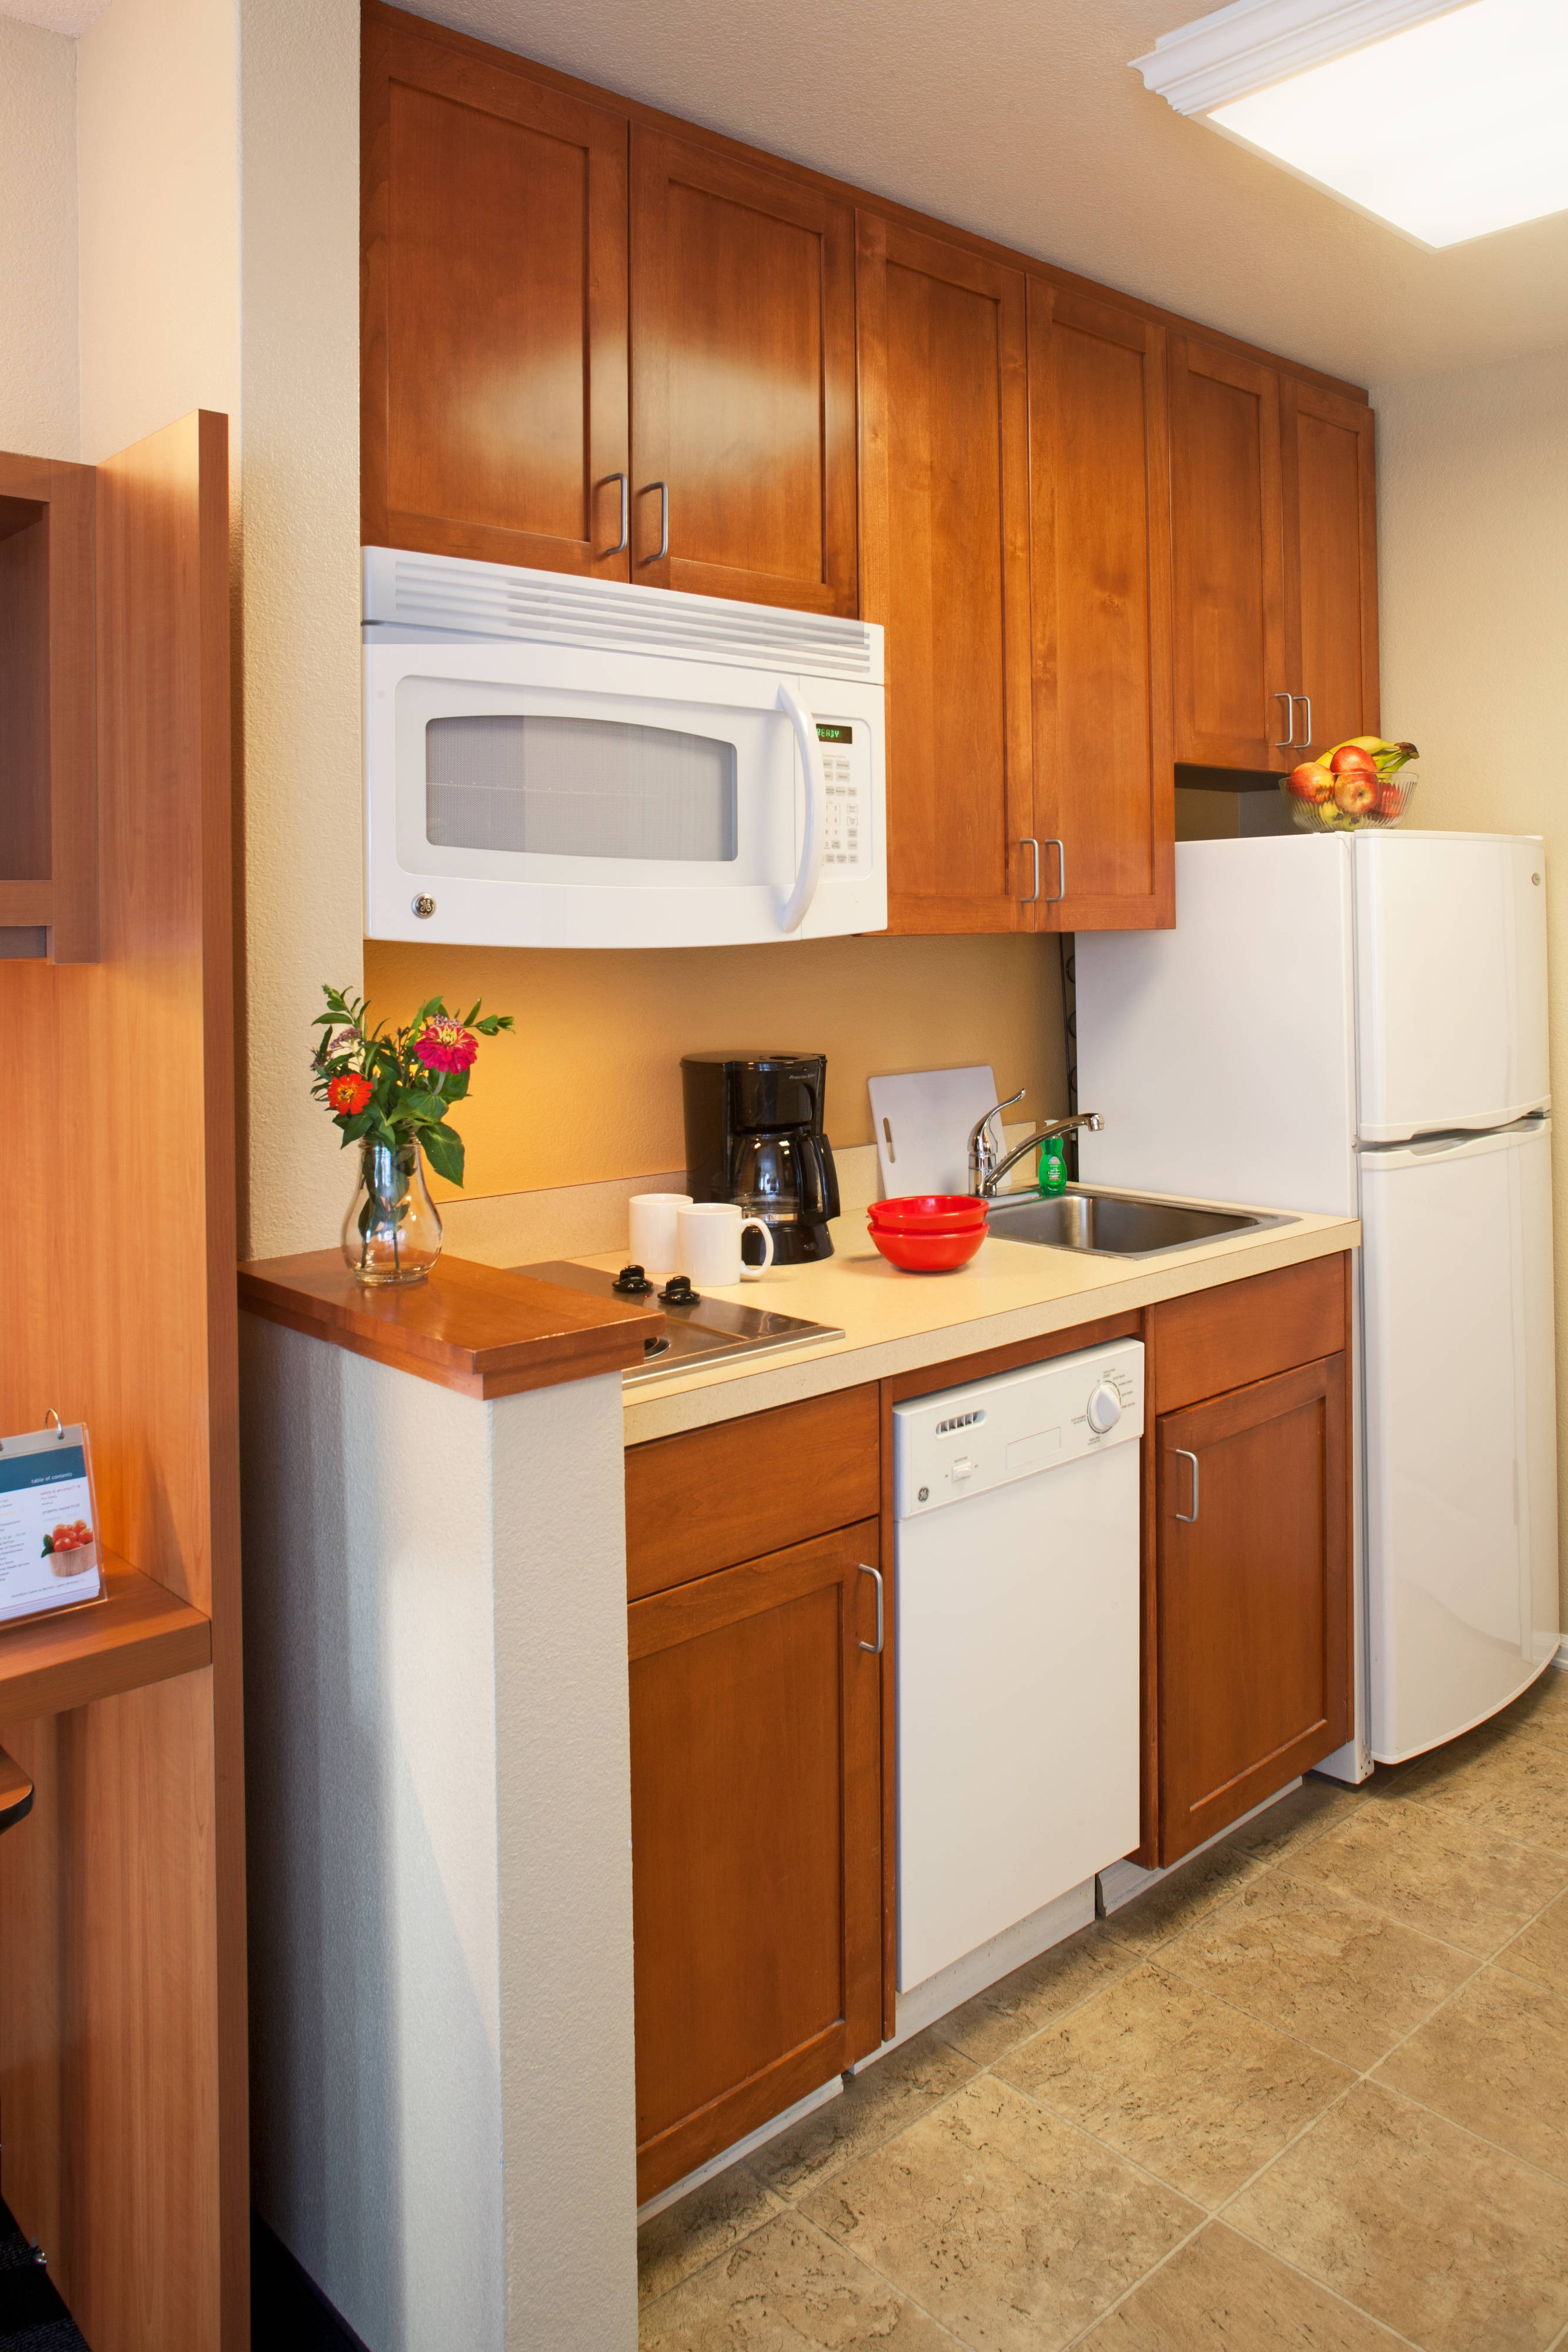 medford extended stay kitchen